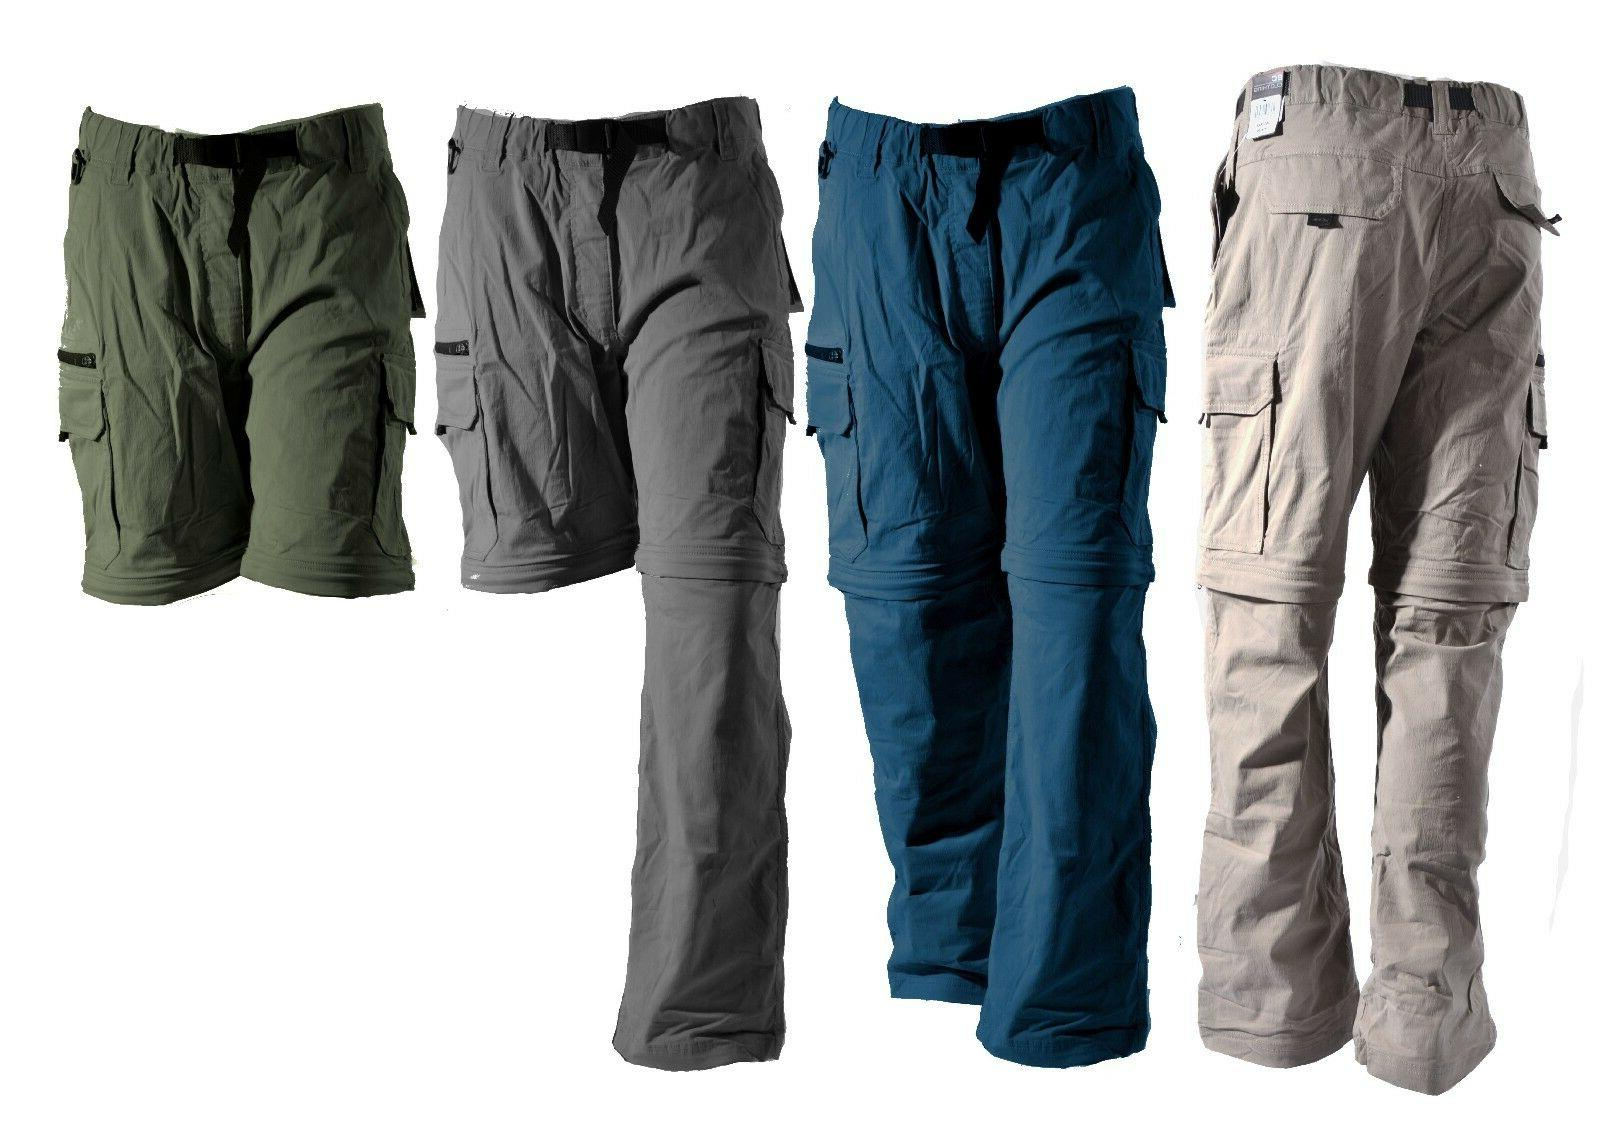 BC Clothing Pants Zip-Off Shorts Hiking Stretch